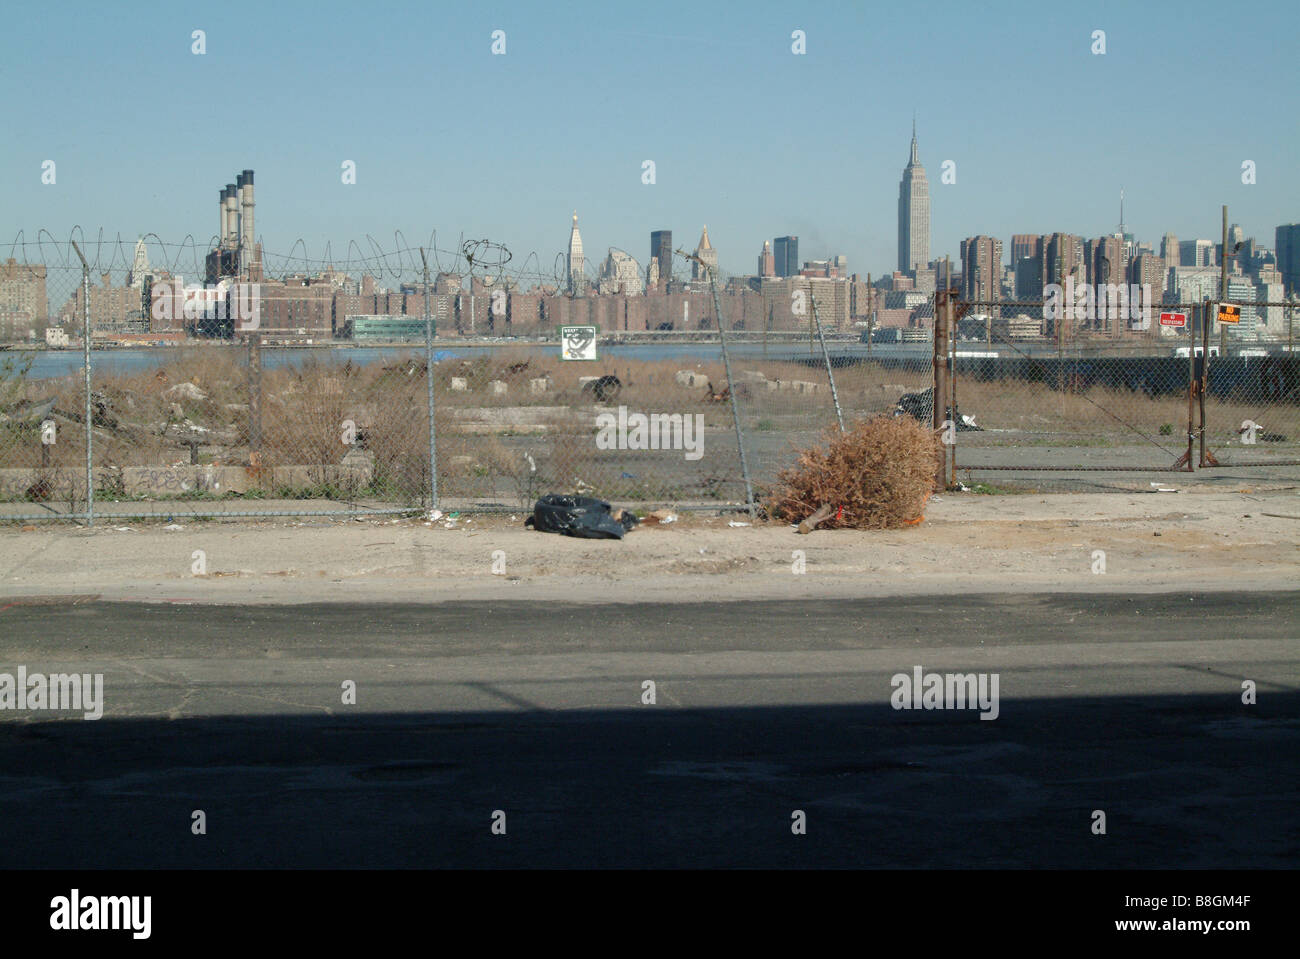 a view of Manhattan from greenpoint, brooklyn - Stock Image